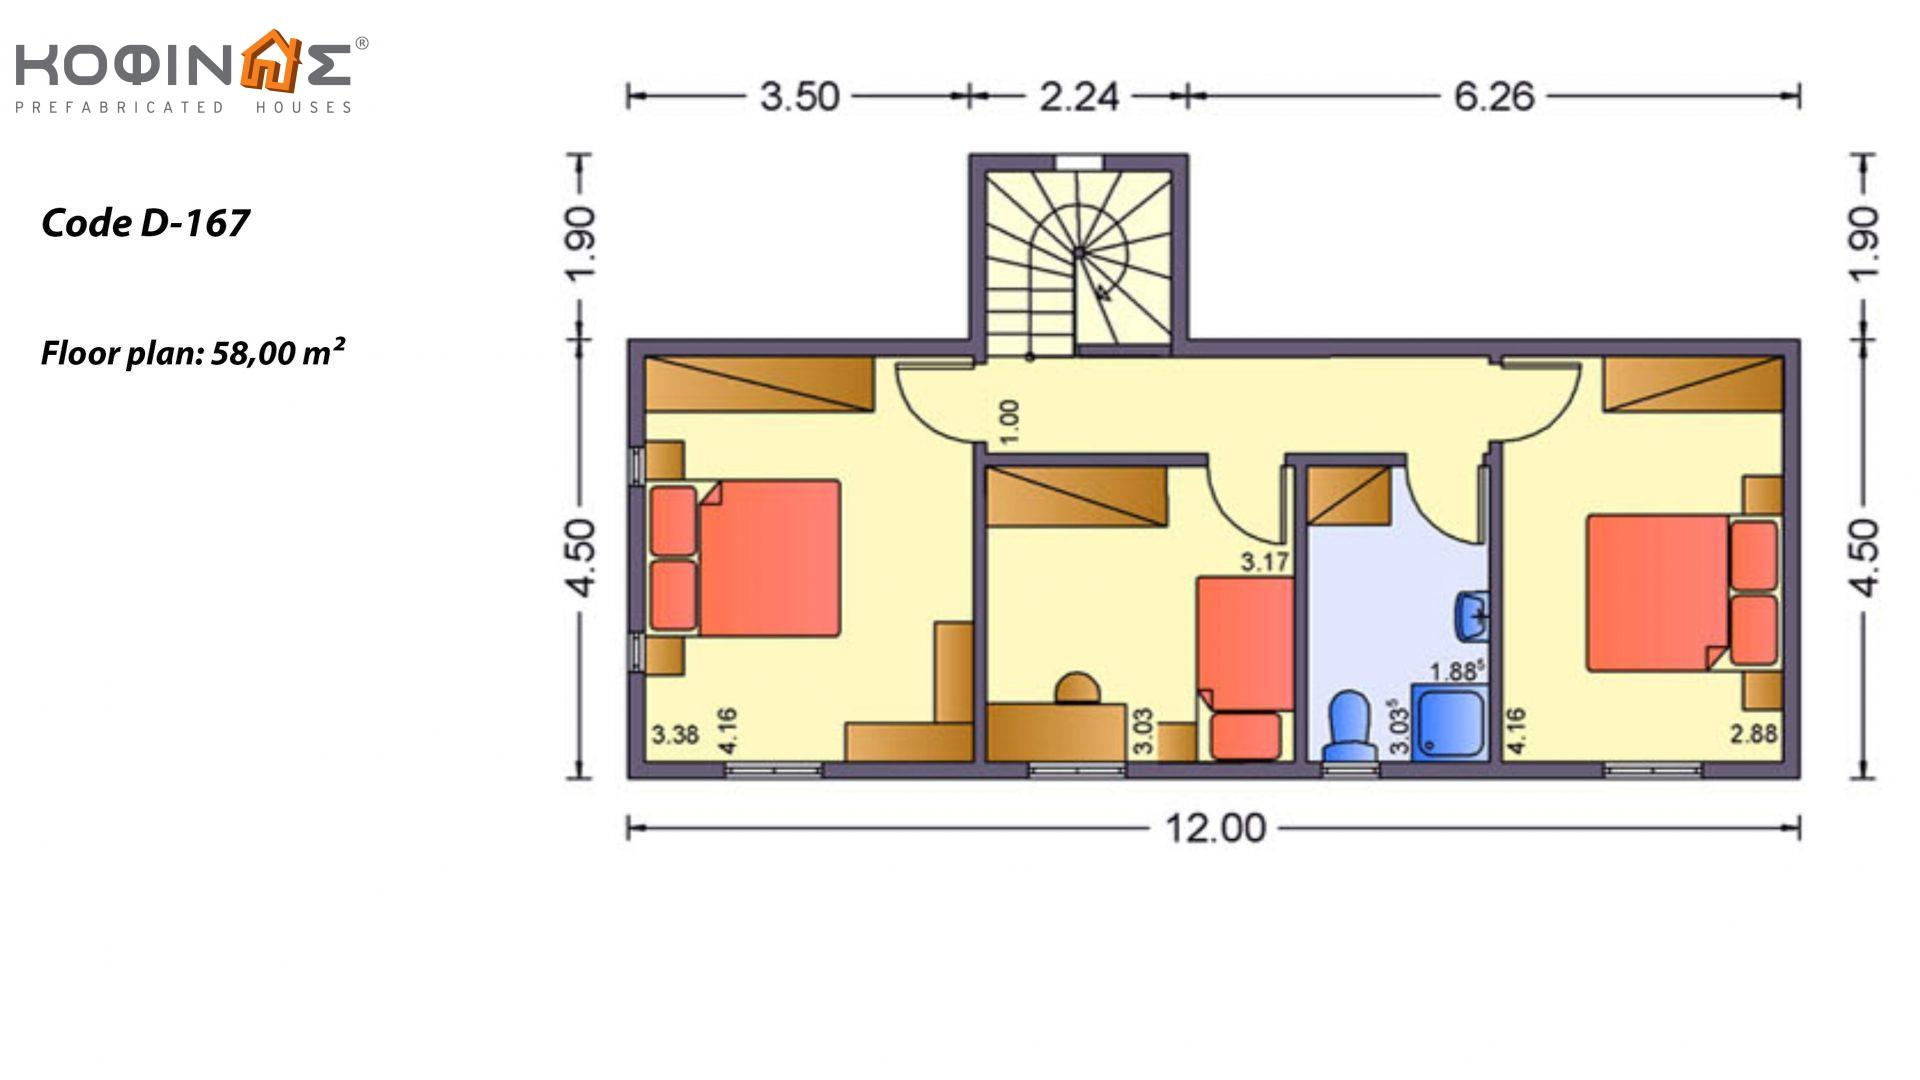 2-story house D-167, total surface of 167,00 m²,roofed areas 15.10 m²